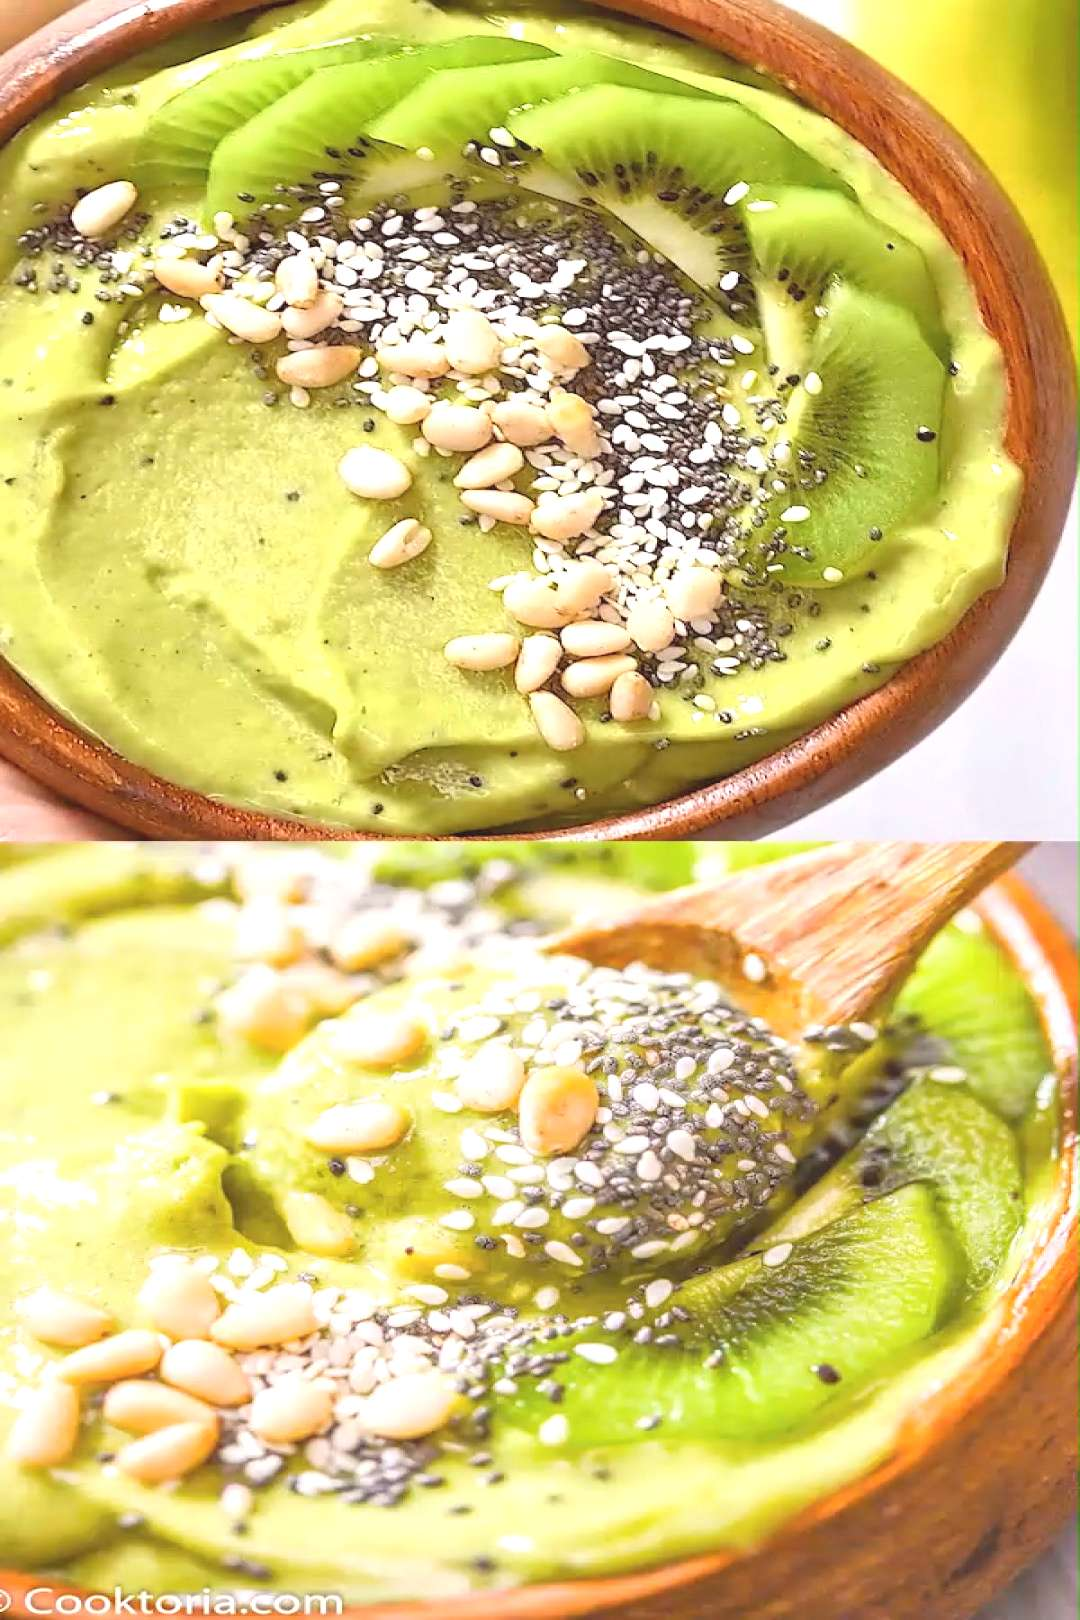 Matcha Green Smoothie Bowl This Green Matcha Smoothie Bowl makes a perfect summer treat. Made with